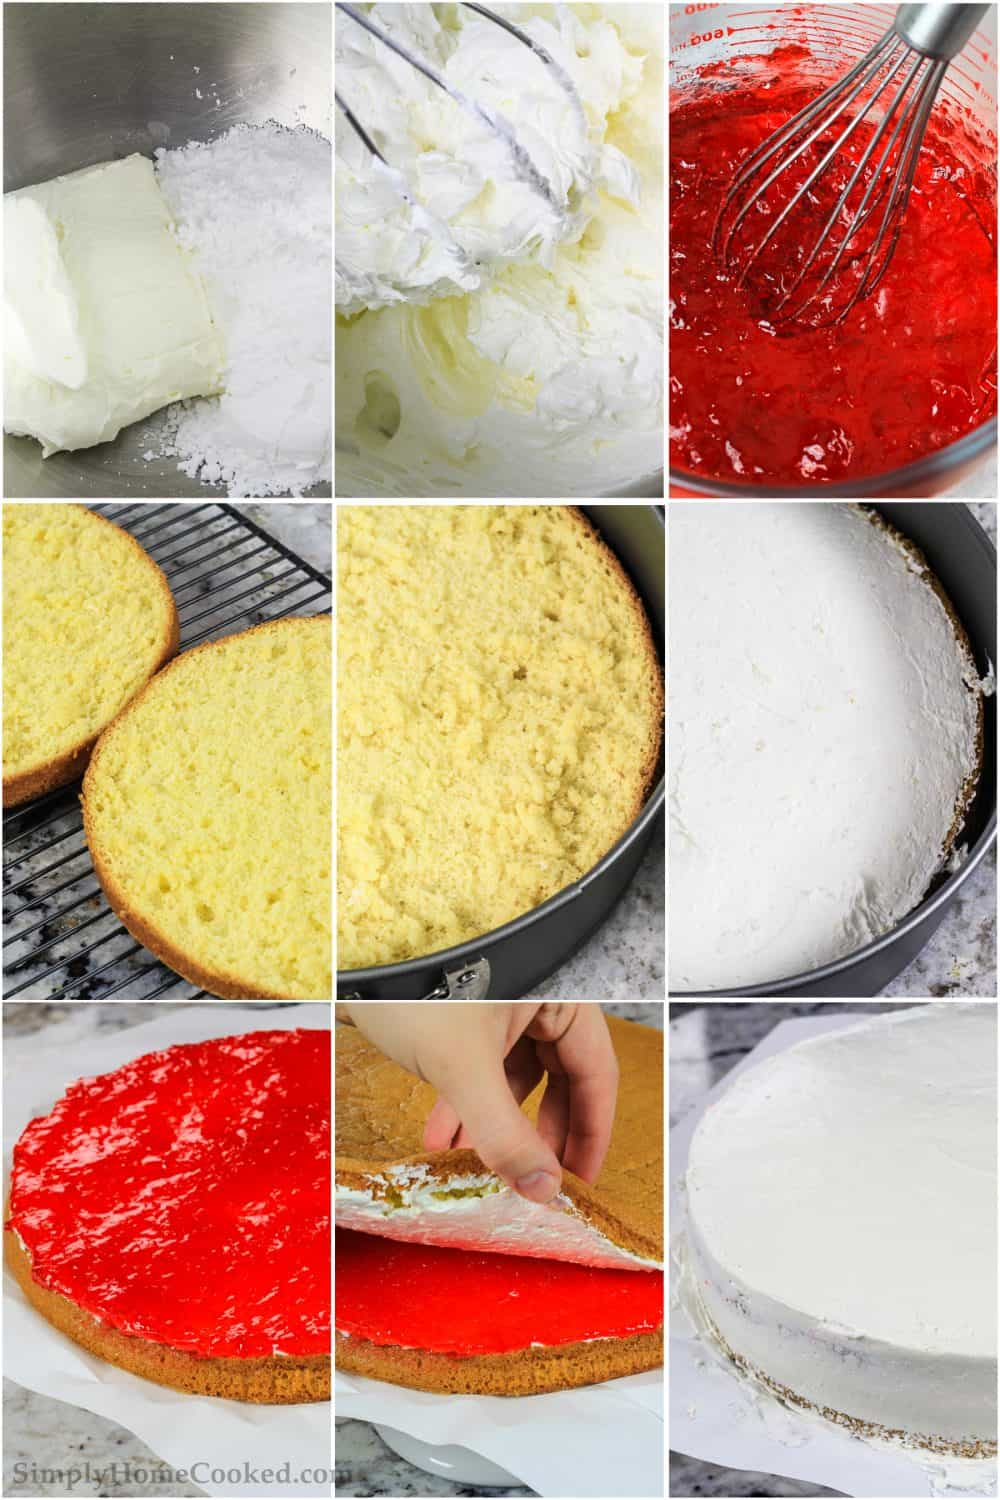 Step by step photo collage of mixing cream cheese and Jello layers for this cherry Jello cake recipe